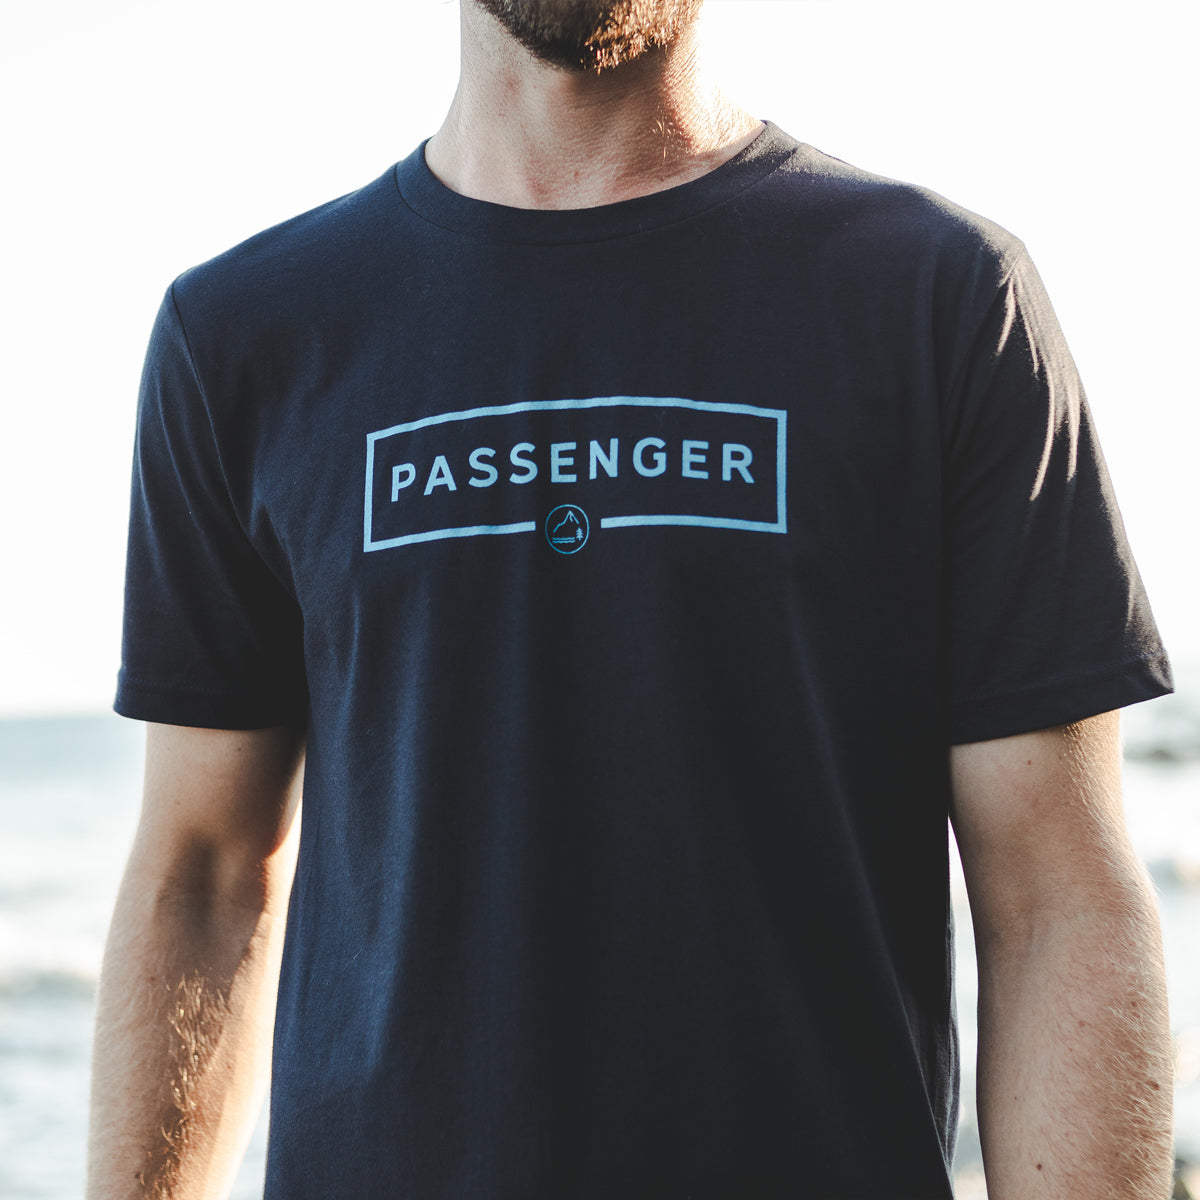 Single Fin T-Shirt - Navy image 2